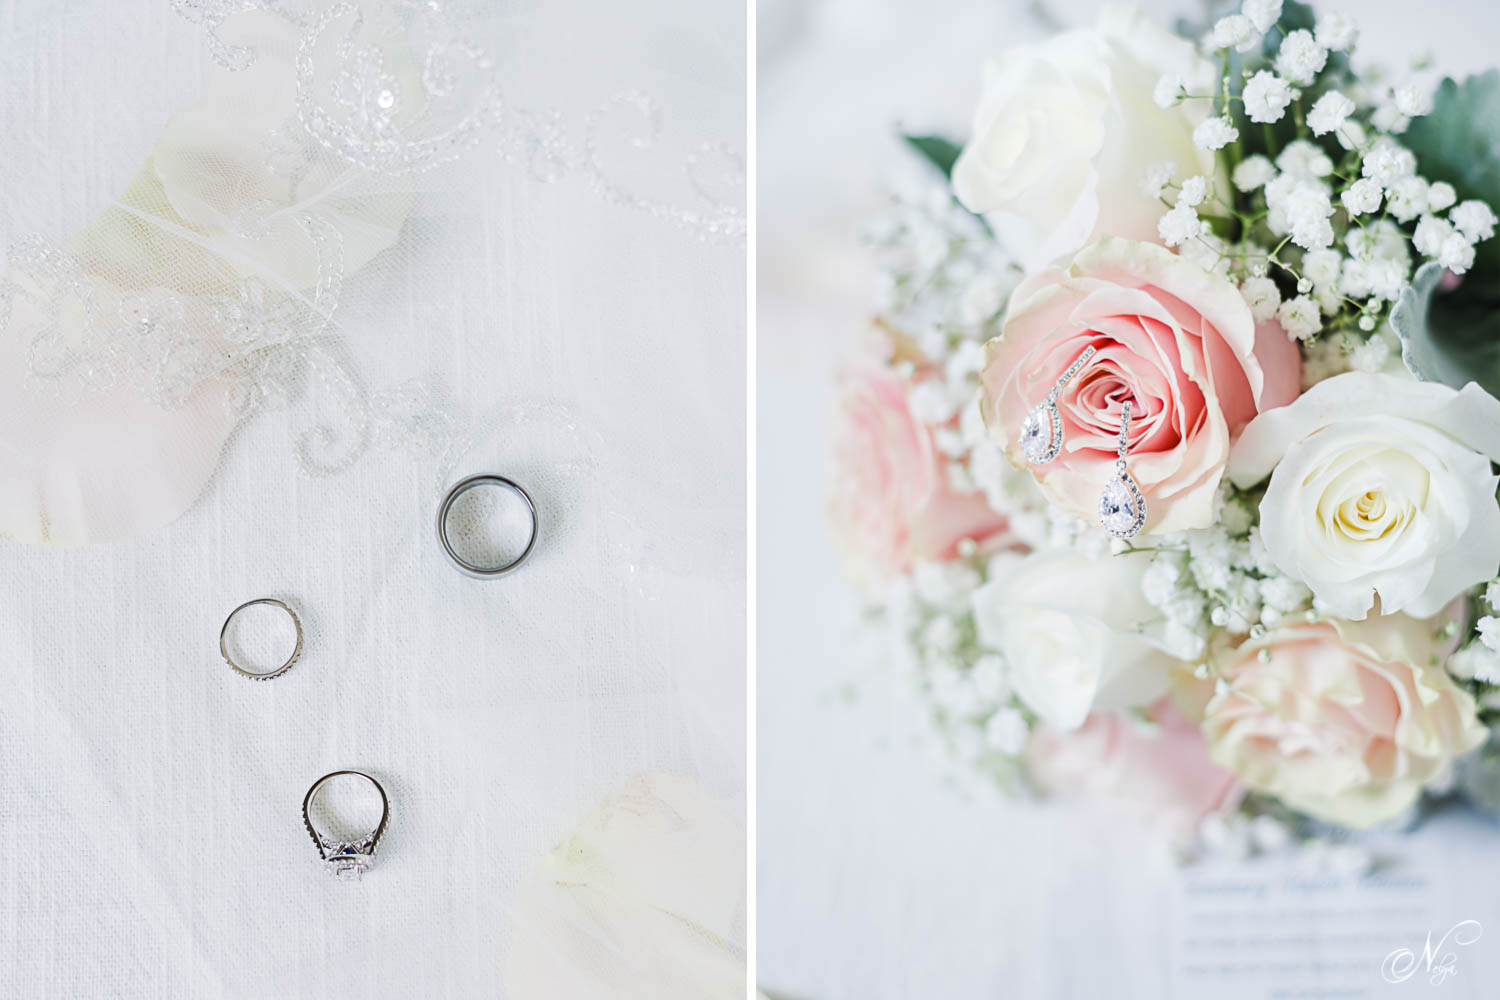 wedding rings on white tulle. And pink rodes in a wedding bouquet in Gatlinburg TN